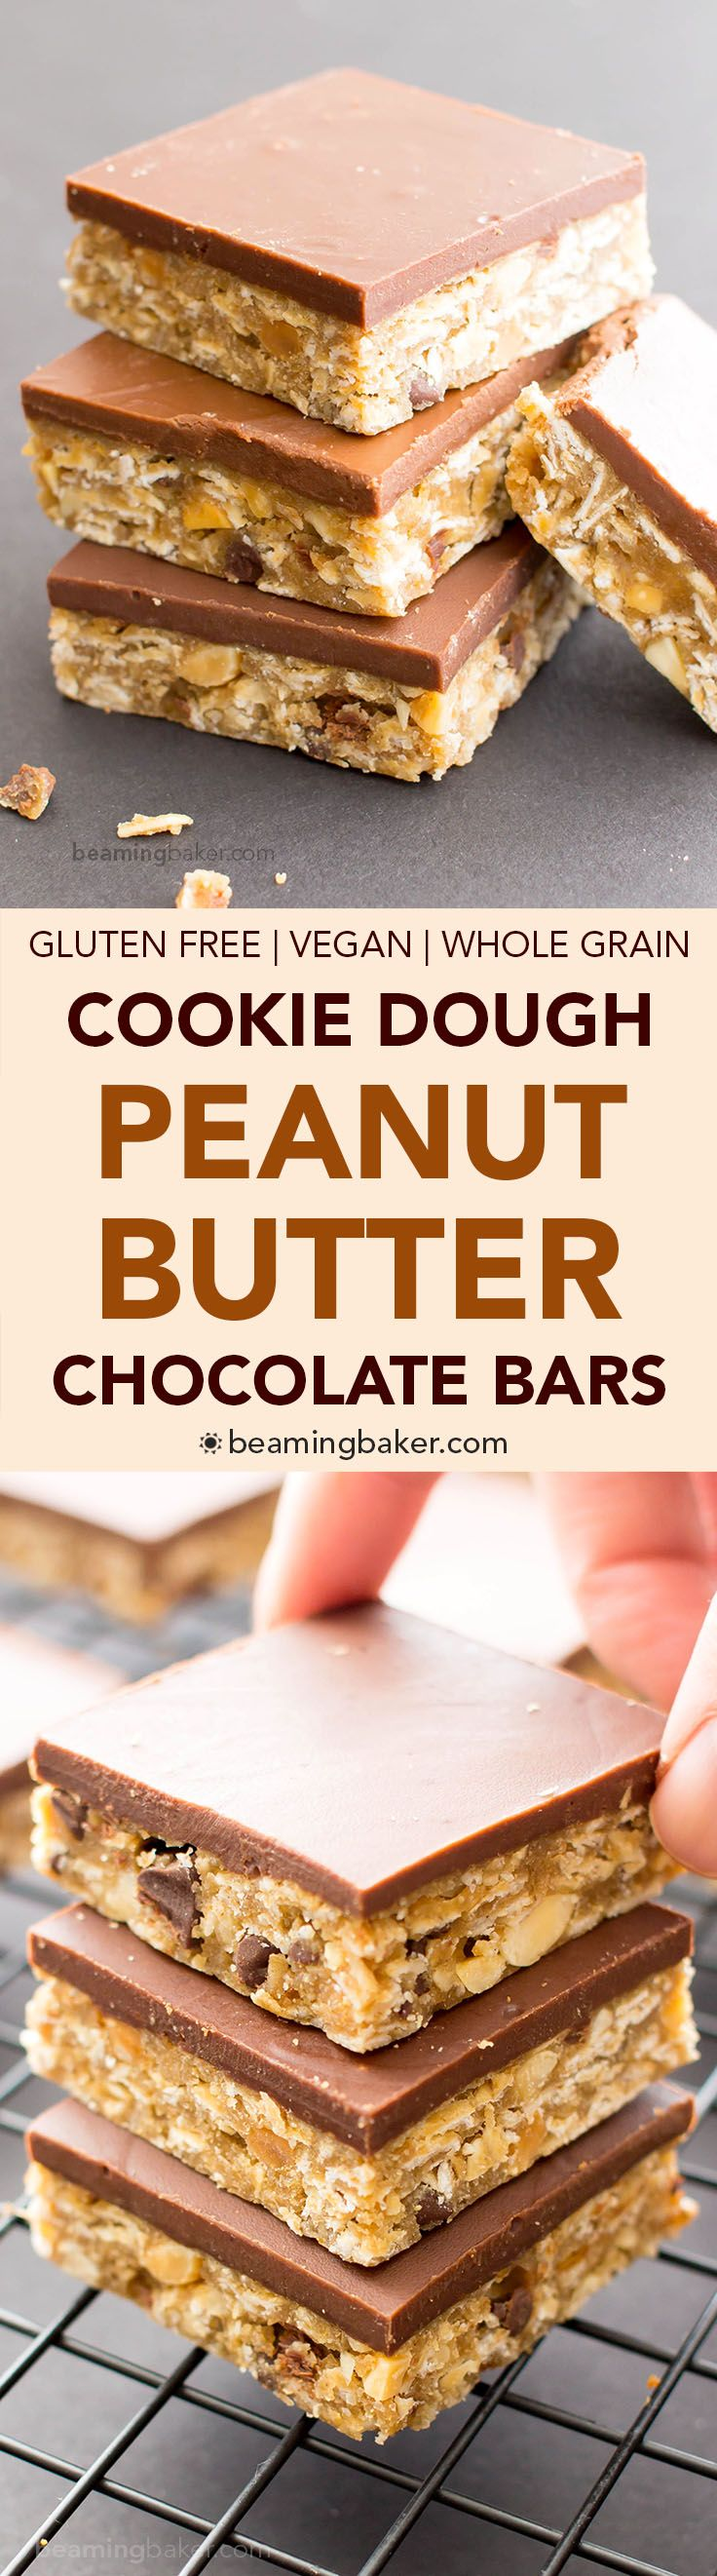 No Bake Chocolate Peanut Butter Oatmeal Cookie Dough Bars (V, GF, DF): an easy recipe for decadent peanut butter cookie dough bars topped with a thick layer of chocolate and bursting with oats. #Vegan (Gluten Free Recipes)